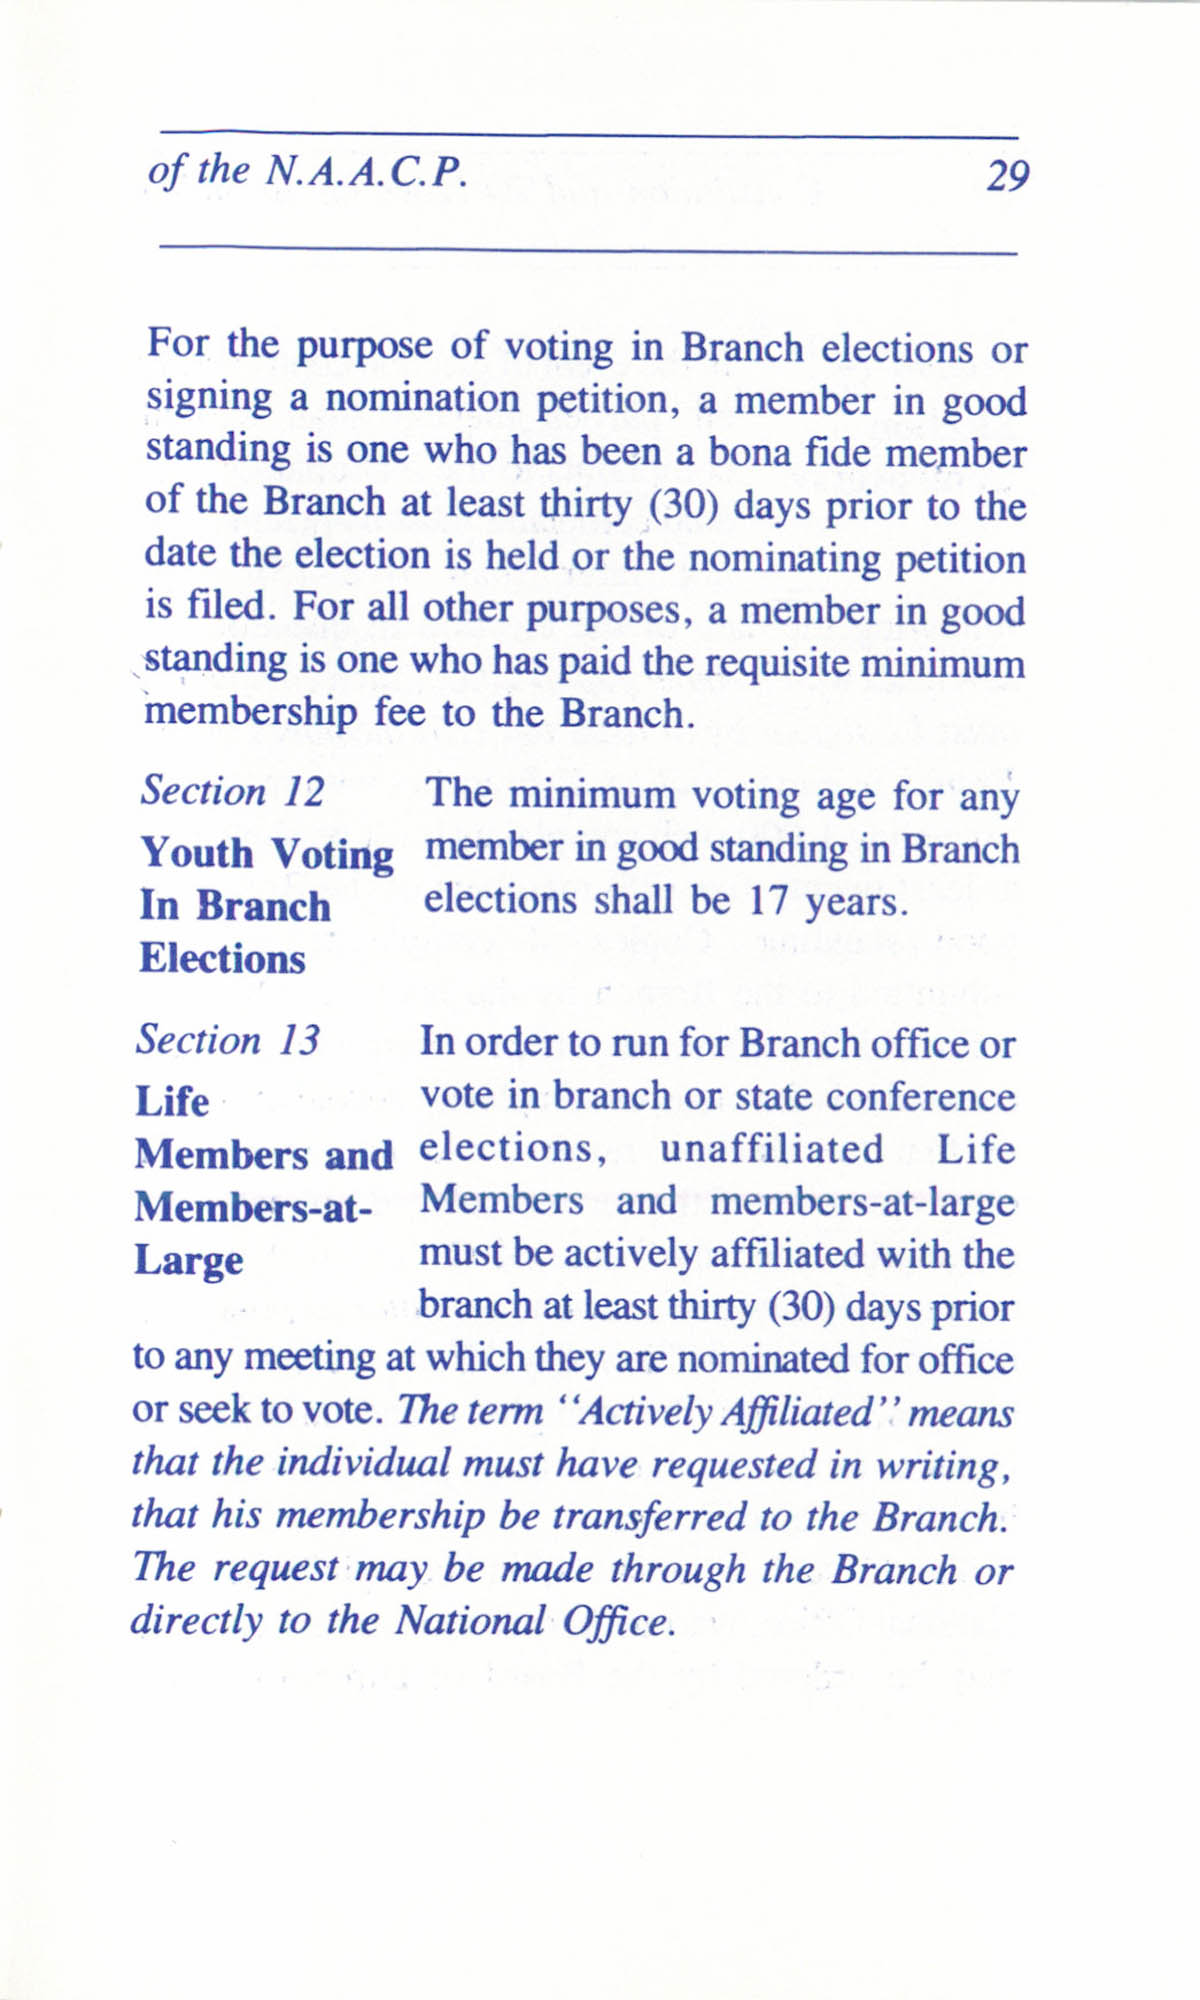 Constitution and By-Laws for Branches of the NAACP, June 1993, Page 29